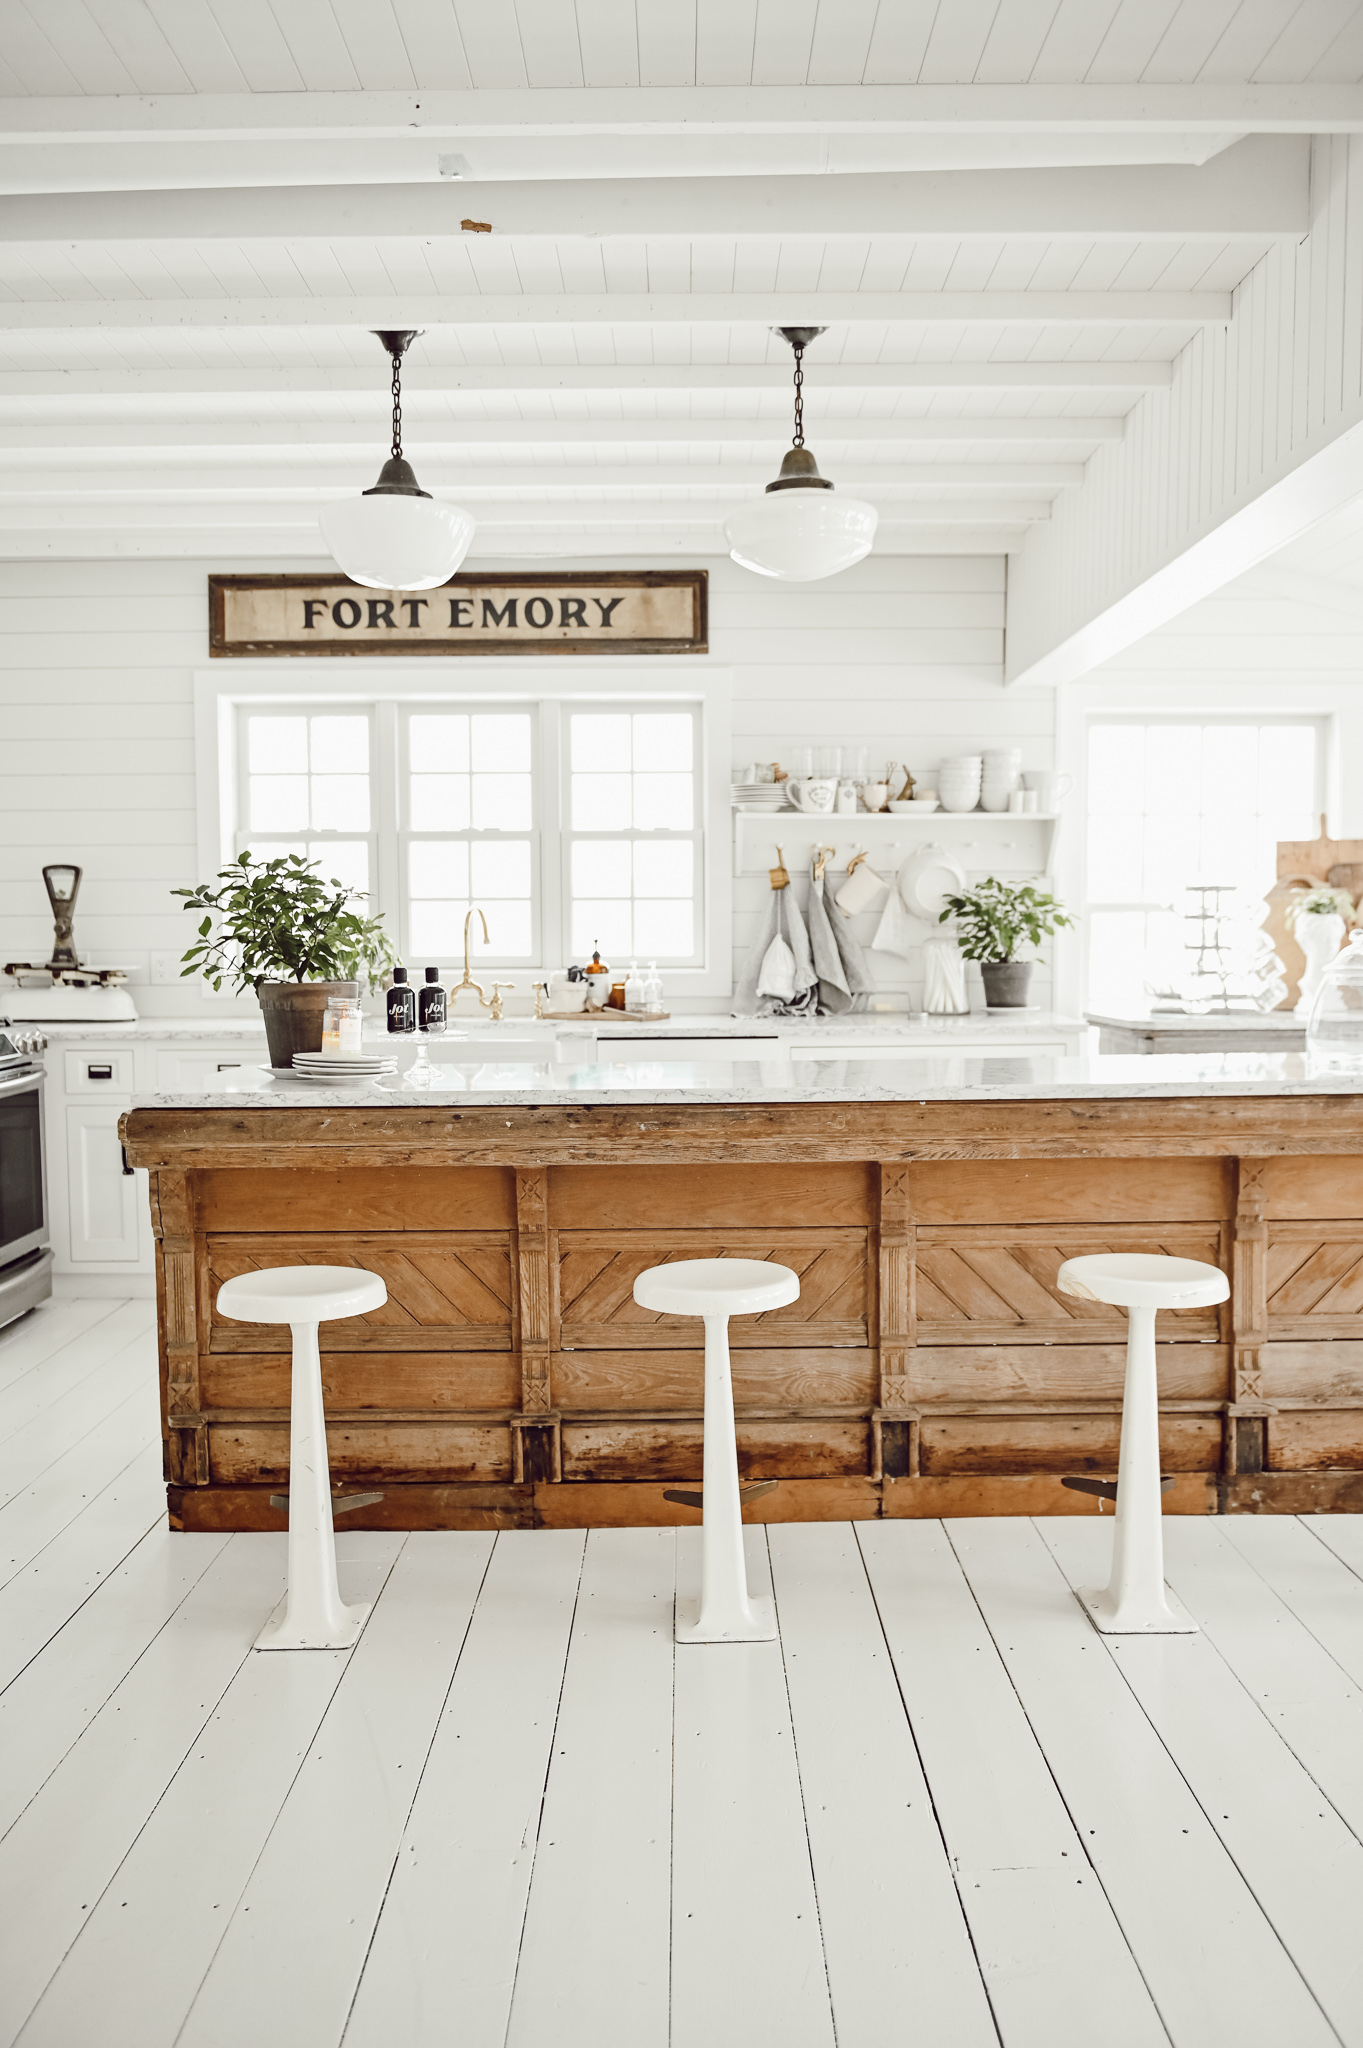 Antique Kitchen Counter in a Farmhouse